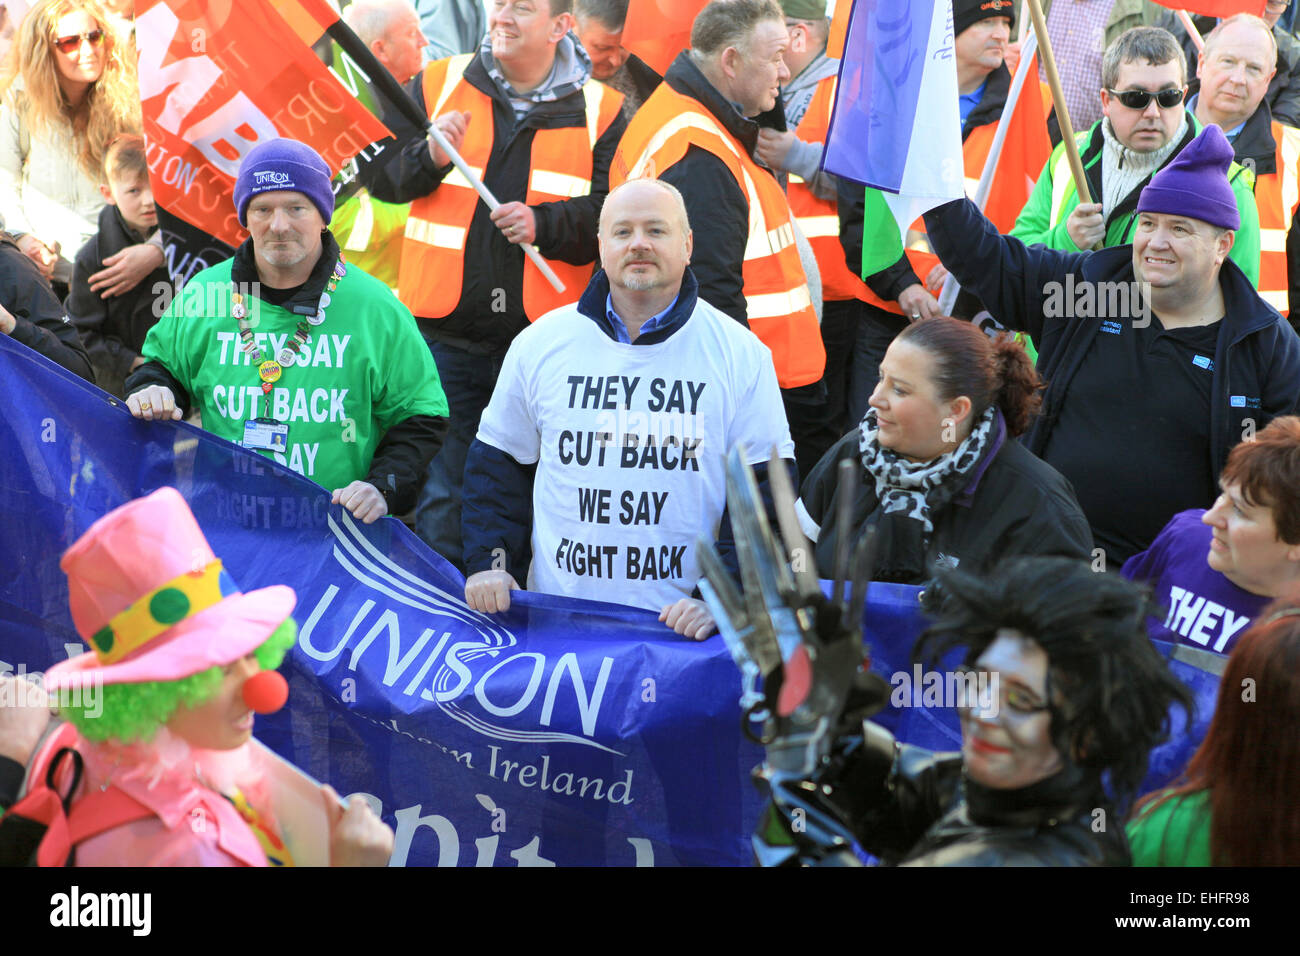 Belfast, UK. 13th March, 2015. A Unison member wearing a 'THey say cut back, we say fight back' T-Shirt - Stock Image